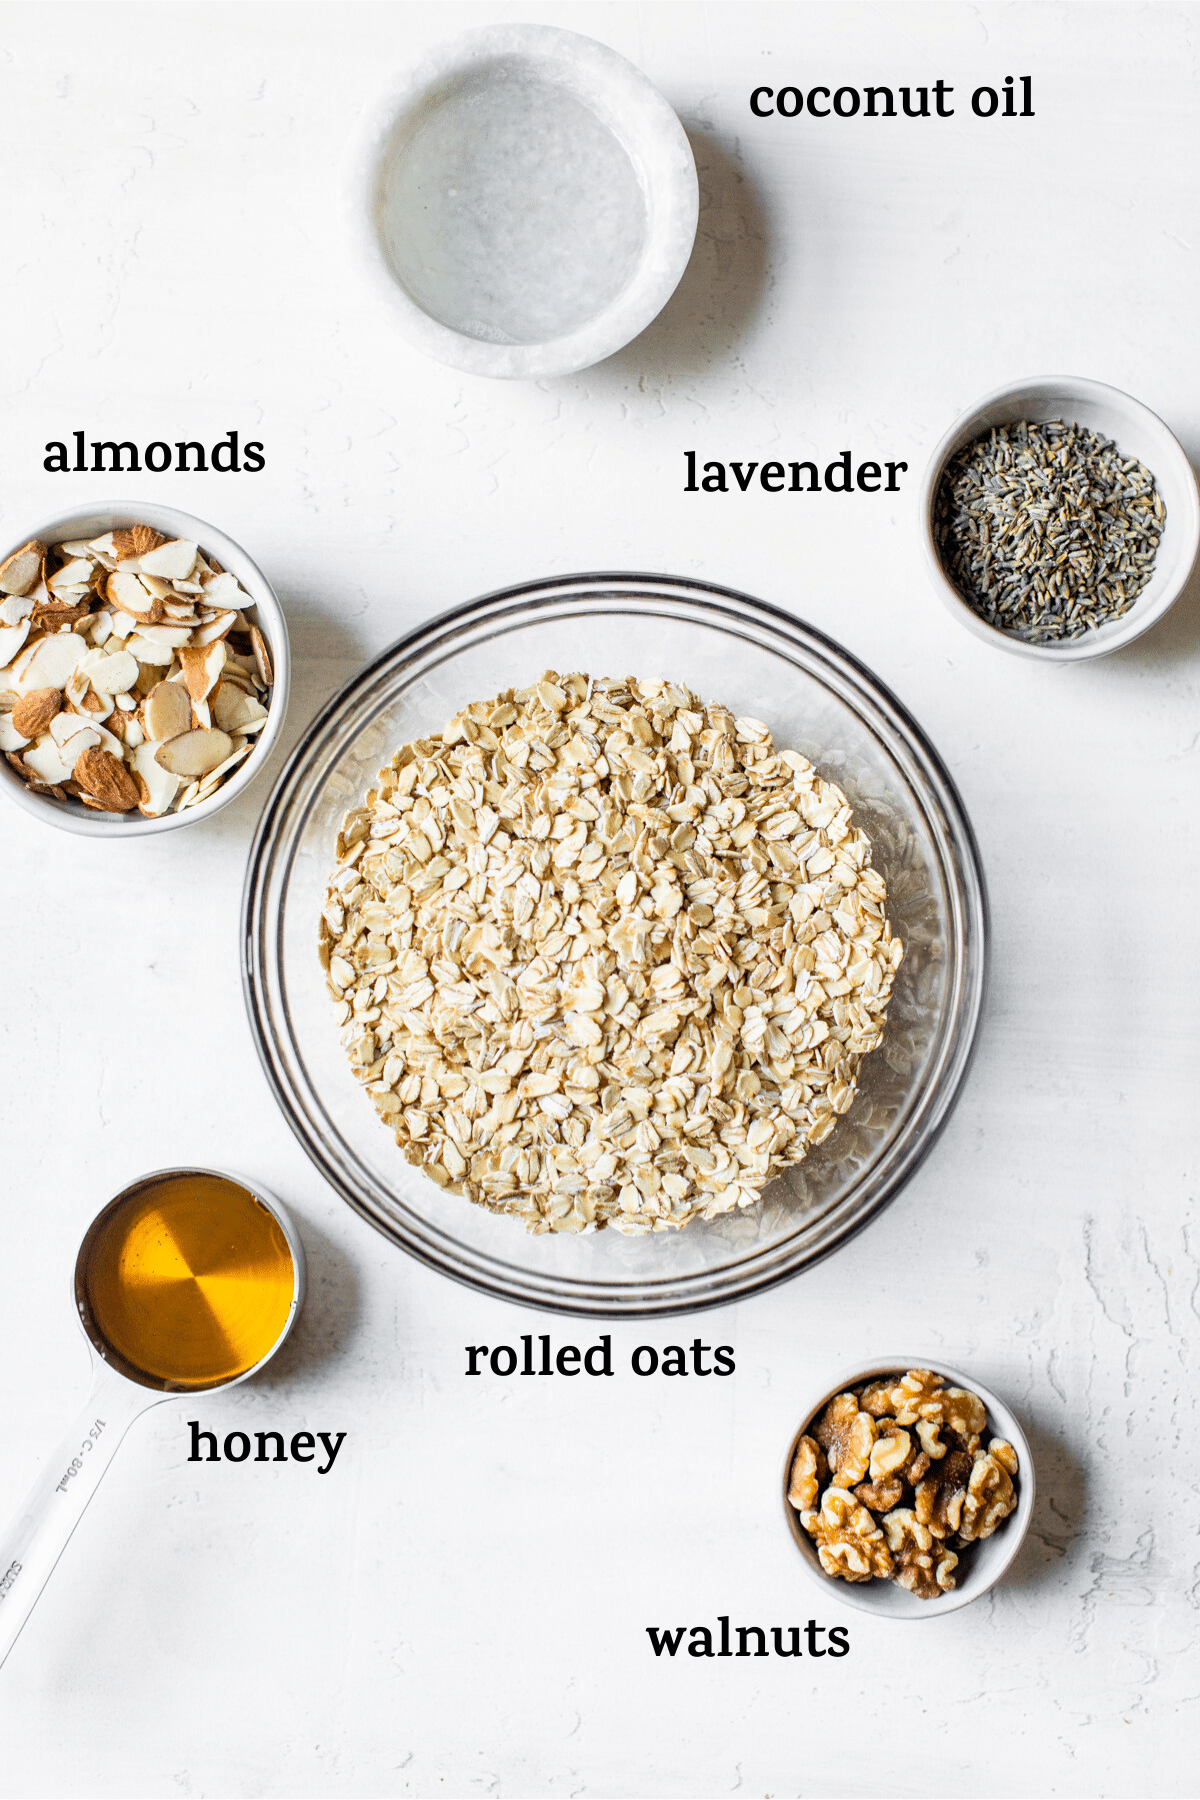 granola ingredients with text overlay